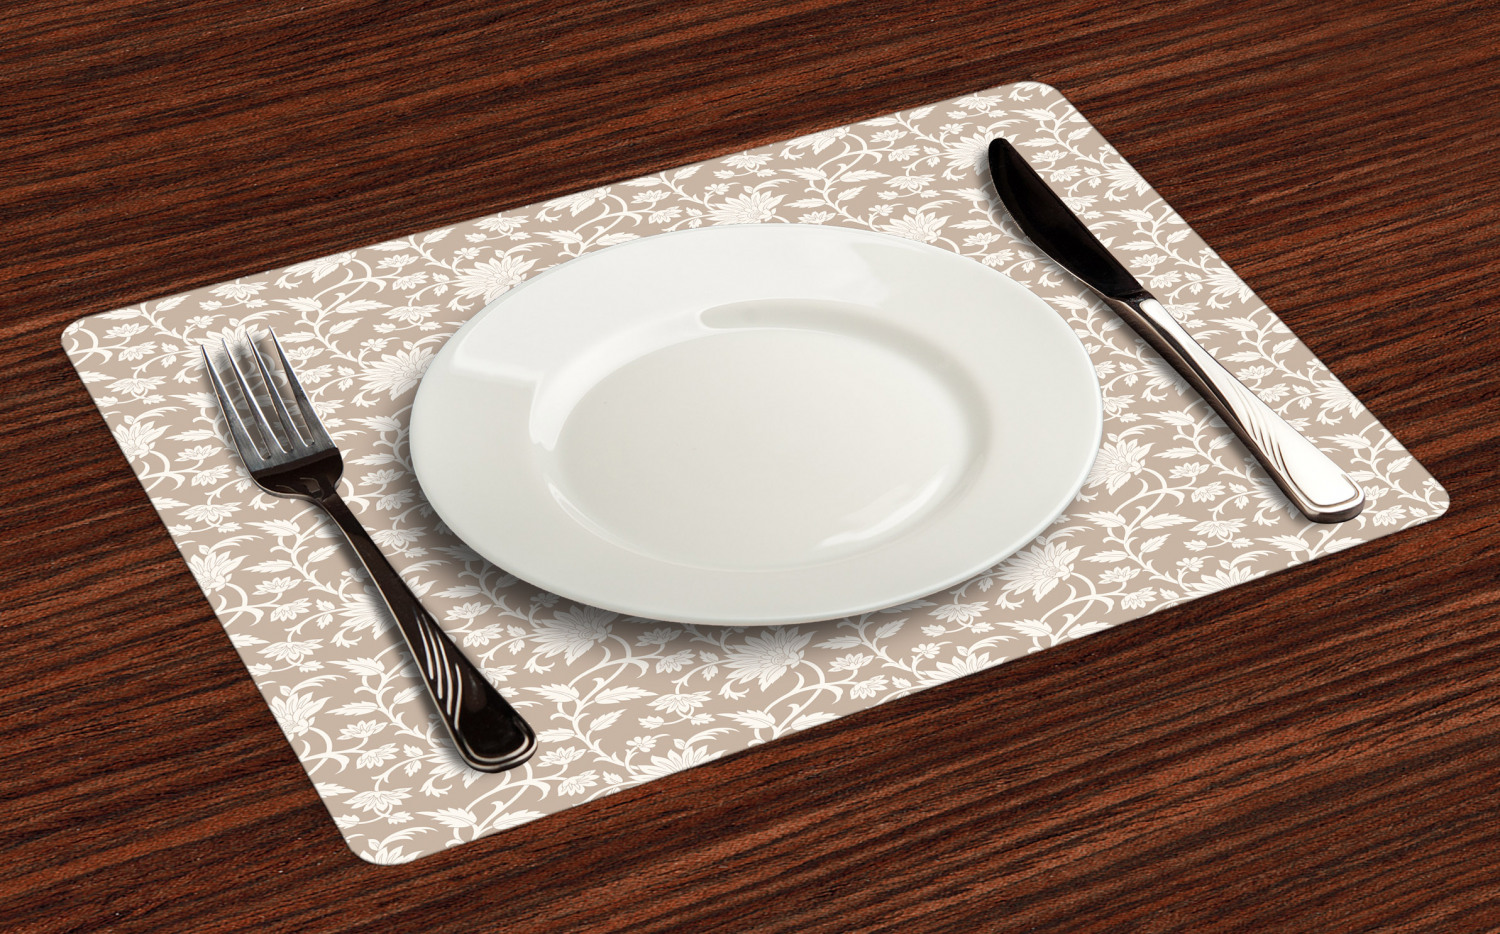 Ambesonne-Flower-Pattern-Placemat-Set-of-4-Fabric-Place-Mats-for-Table-Decor thumbnail 21